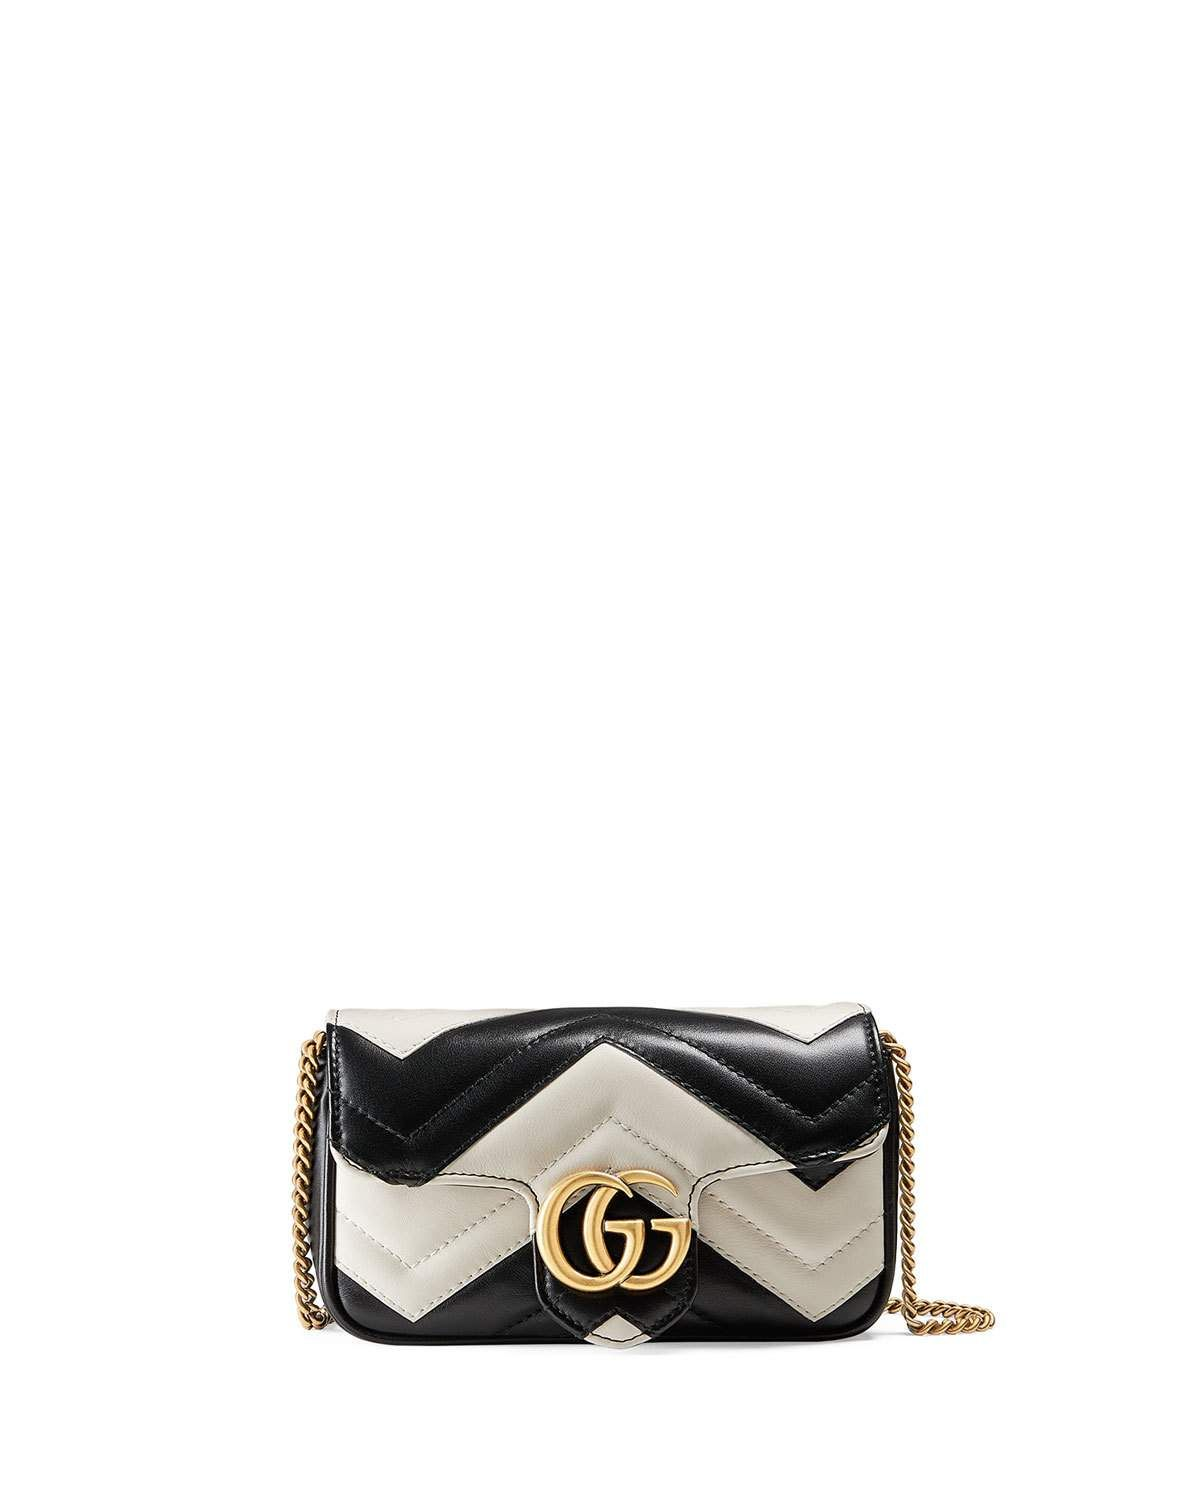 a61f788a1990 Gucci GG Marmont Matelassé Leather Super Mini Bag, Black/White | Neiman  Marcus